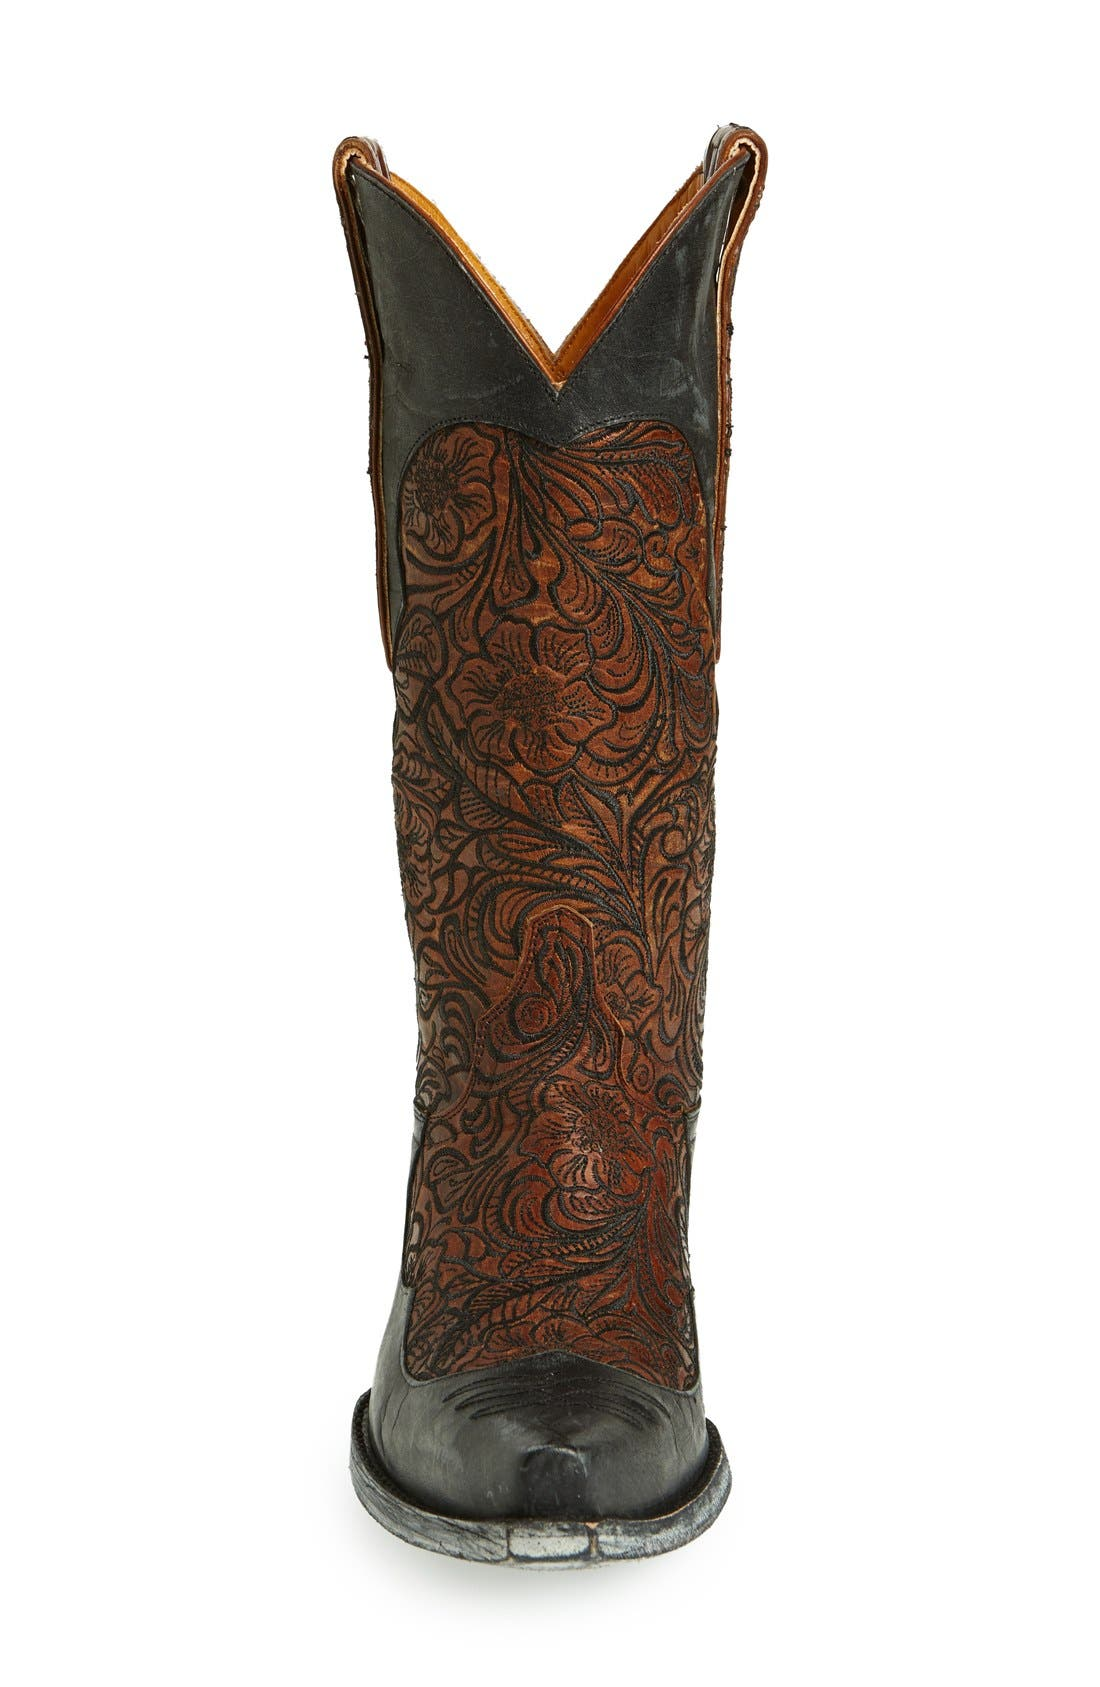 Alternate Image 3  - Old Gringo 'Feita' Floral Embroidered Leather Boot (Women)